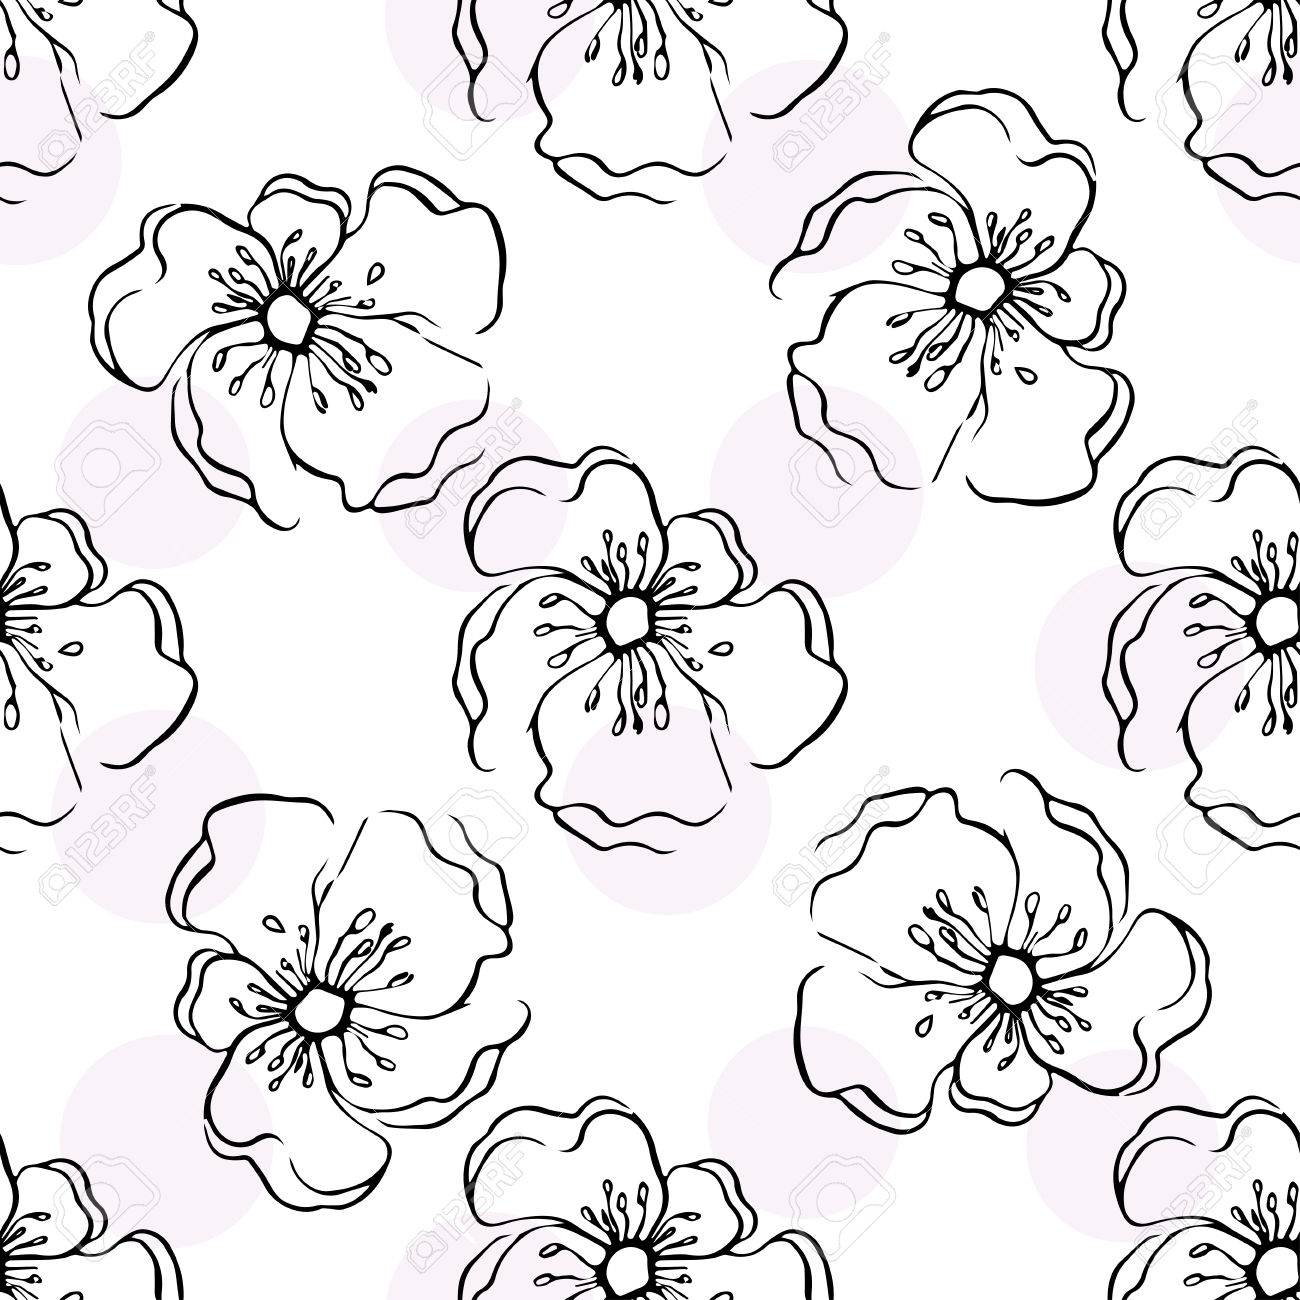 Repeating Modern Floral Background Pattern Seamless Floral